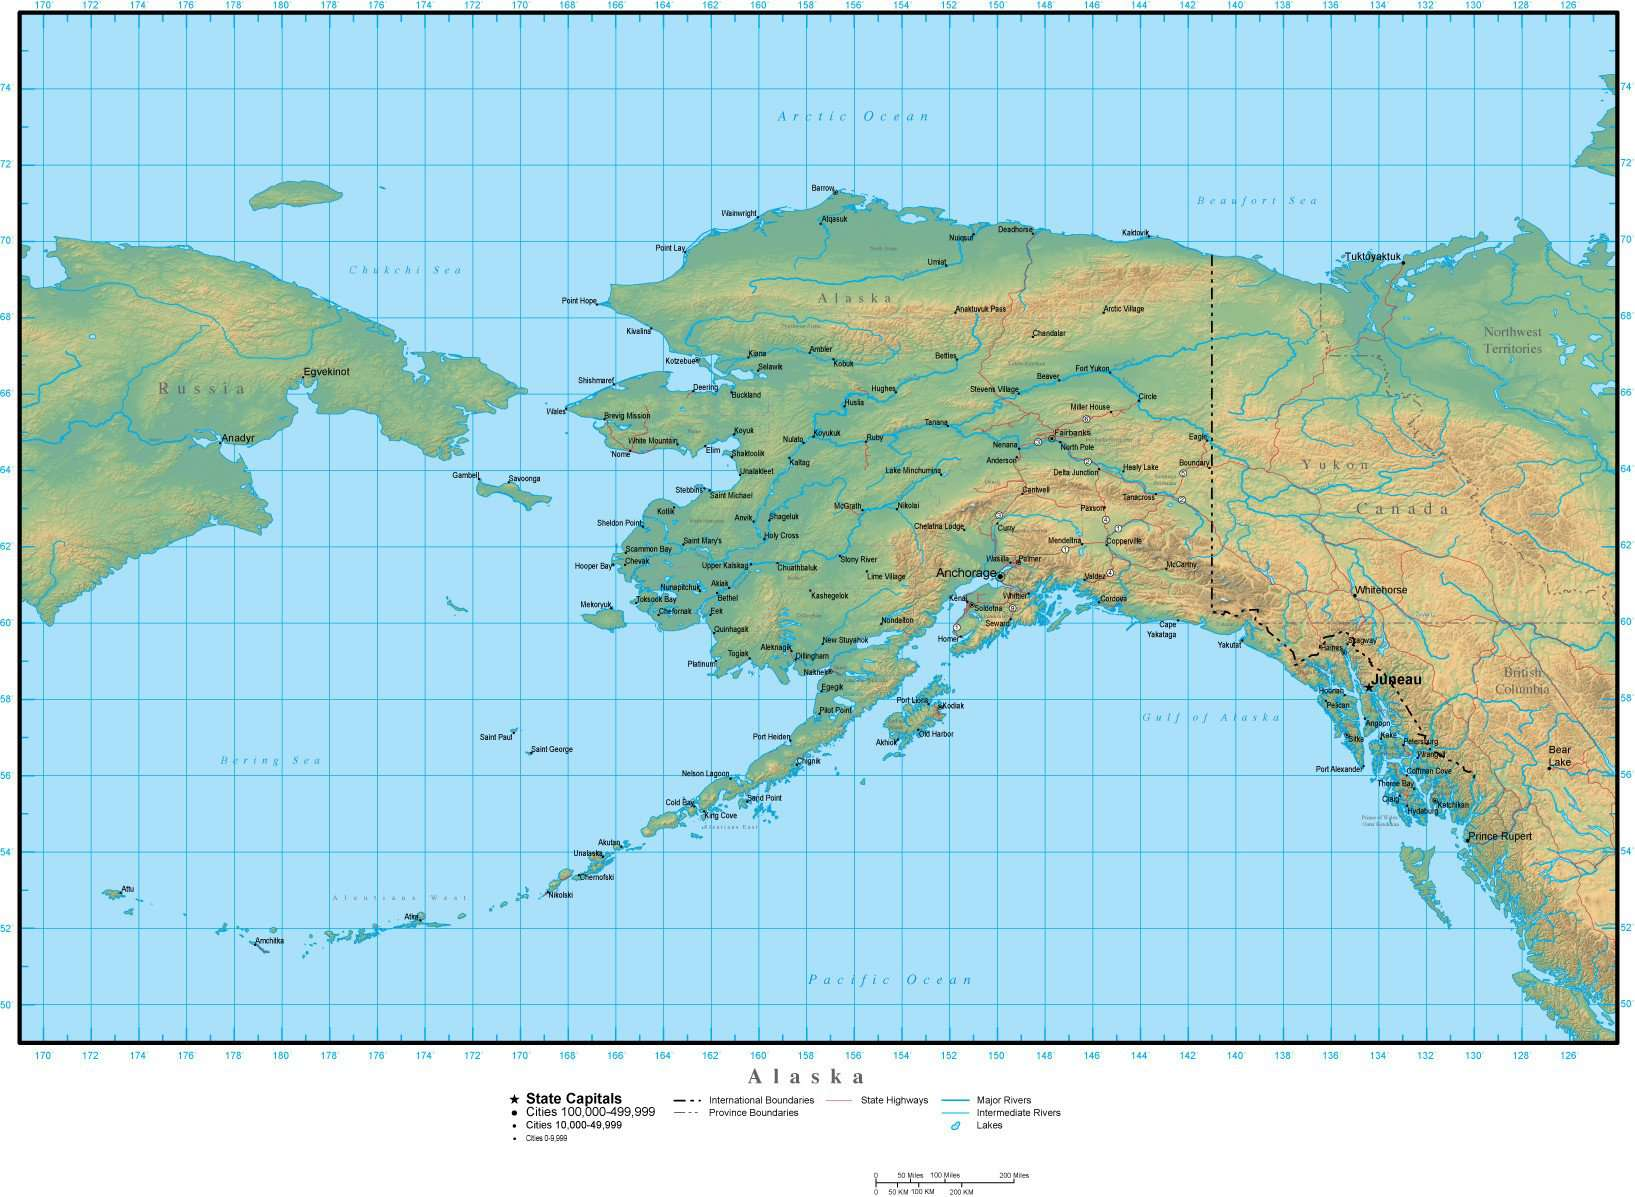 Alaska Map Plus Terrain with Cities Roads and Water Features on texas and alaska map, alaska and klondike gold region map, anchorage alaska on world map, alaska road map, alaska state map, alaska map with cities,